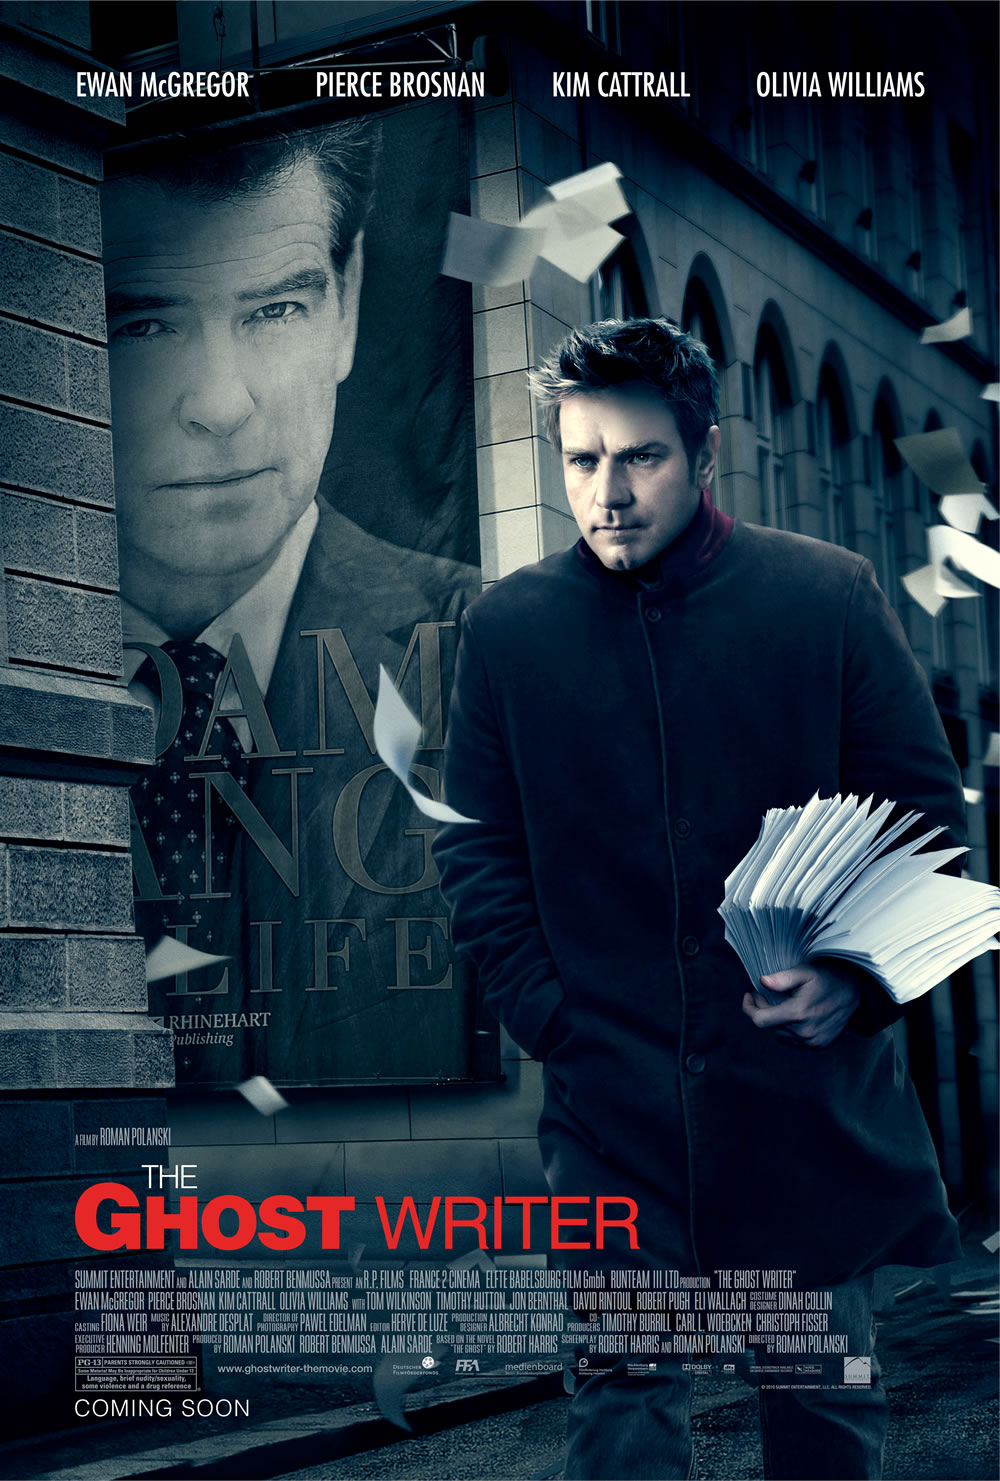 The Ghost Writer (2010) BRRip 720p x264 -MitZep